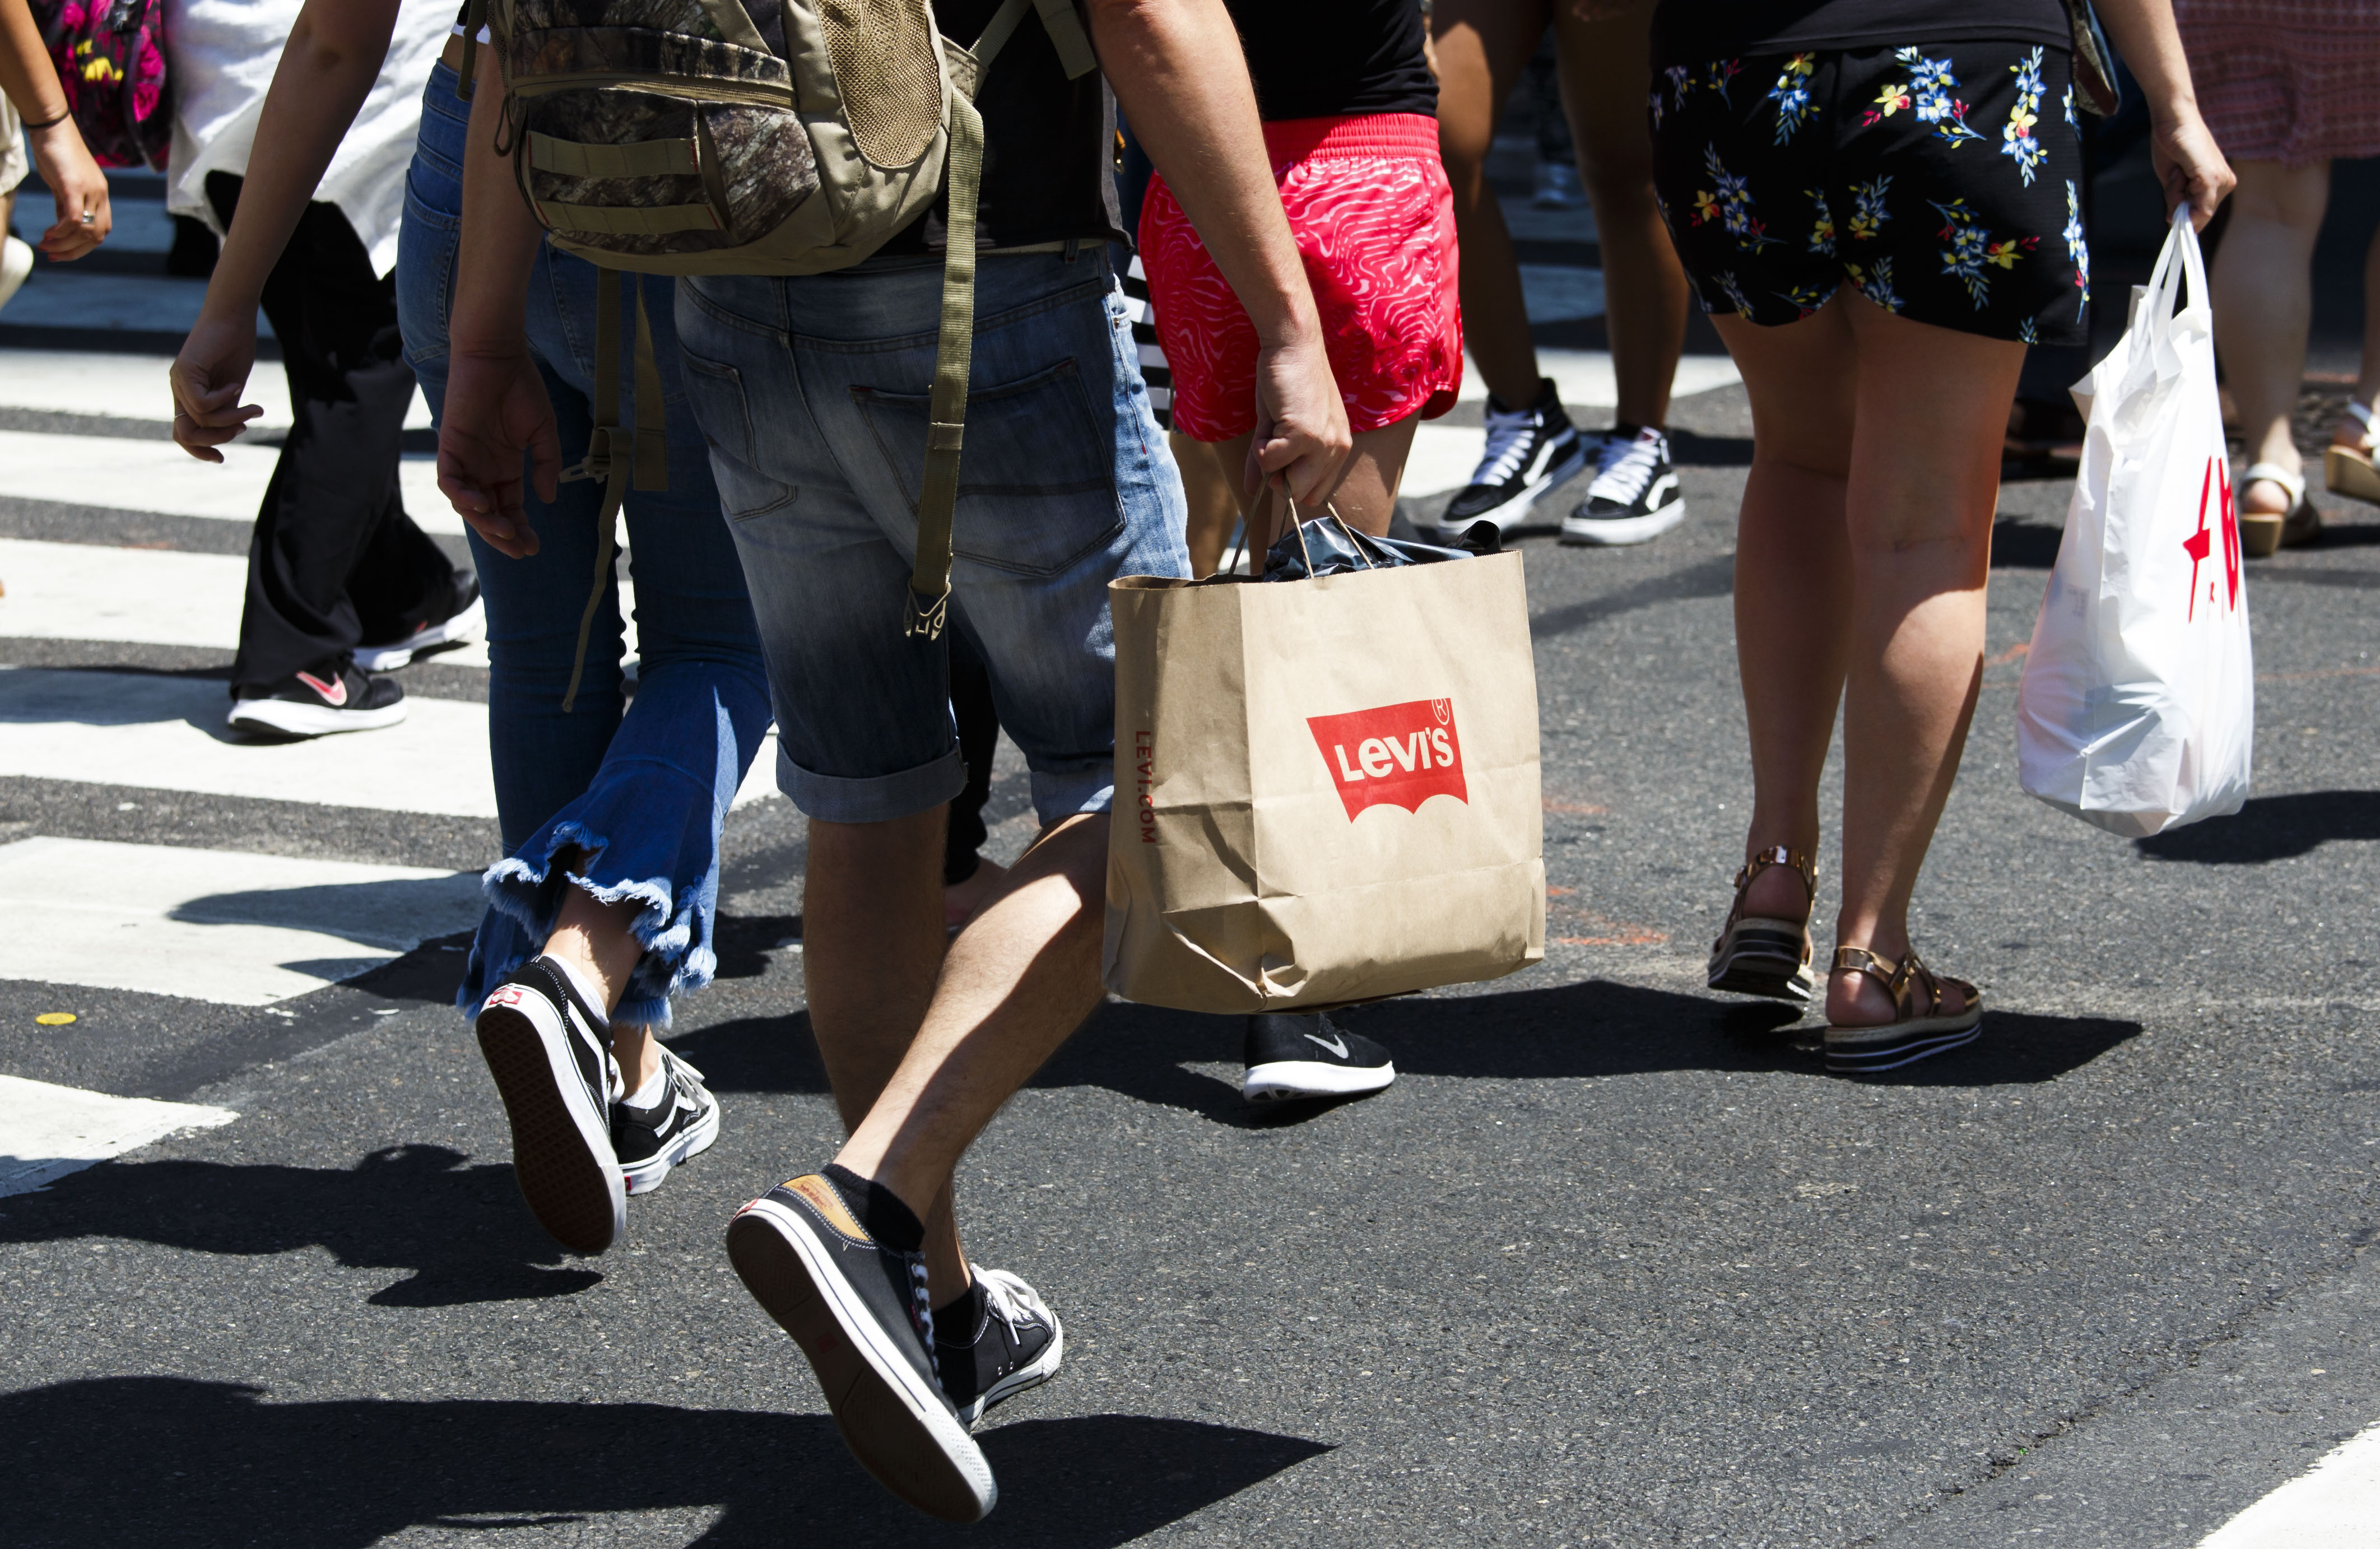 People carry shopping bags in New York, New York, USA, 01 August 2017. A report released today by the United States' Commerce Department showed moderate consumer spending growth in June of this year.US Consumer Spending, New York, USA - 01 Aug 2017